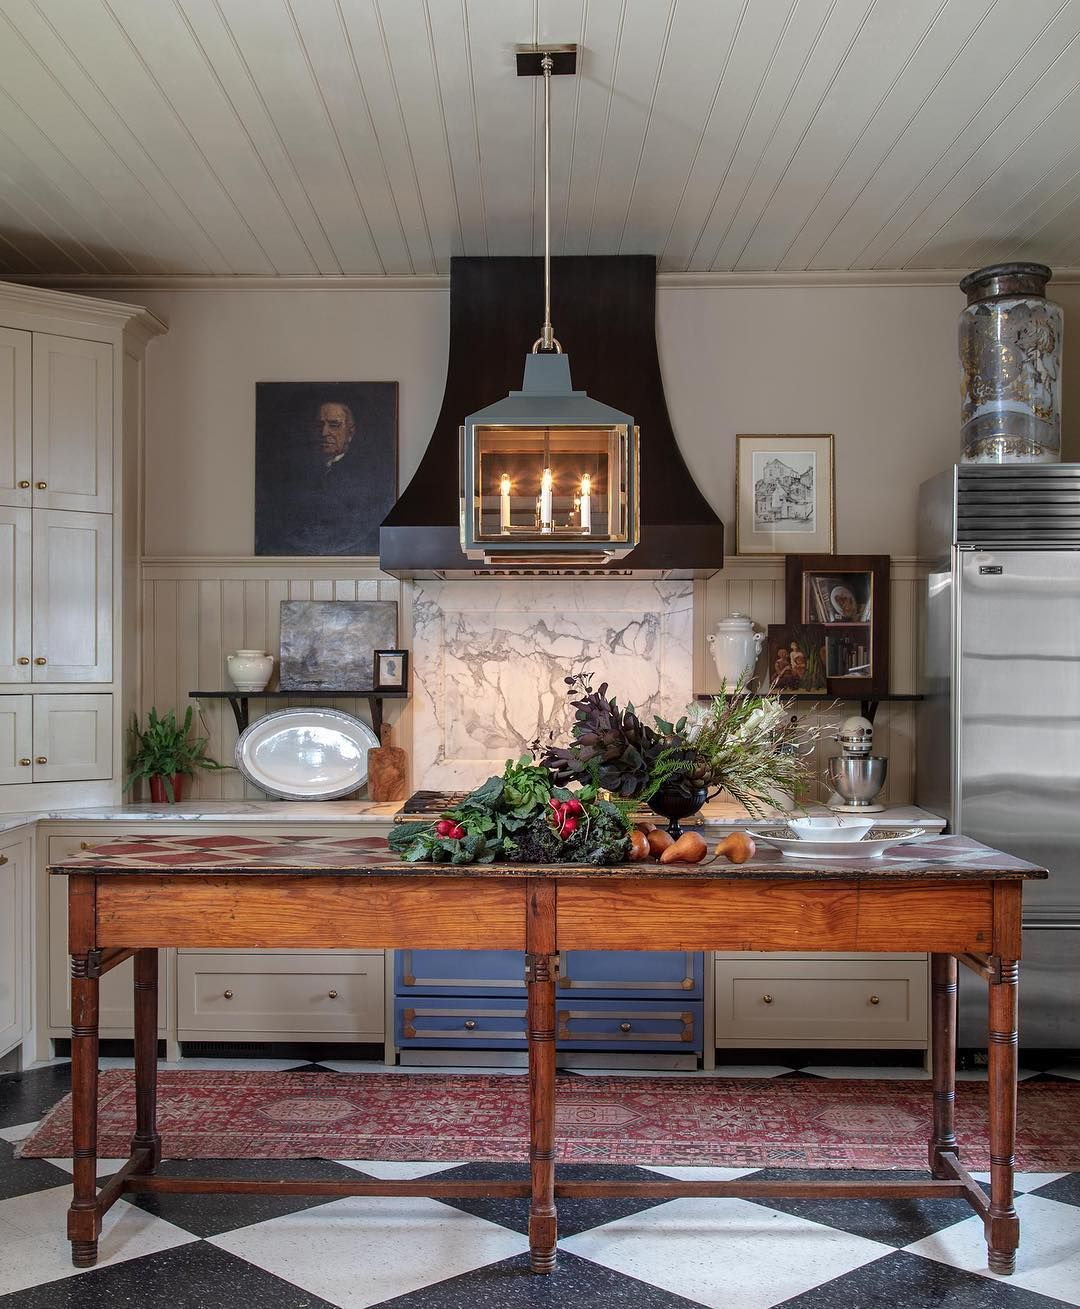 46 Fabulous Country Kitchen Designs Ideas: 3,587 Likes, 100 Comments